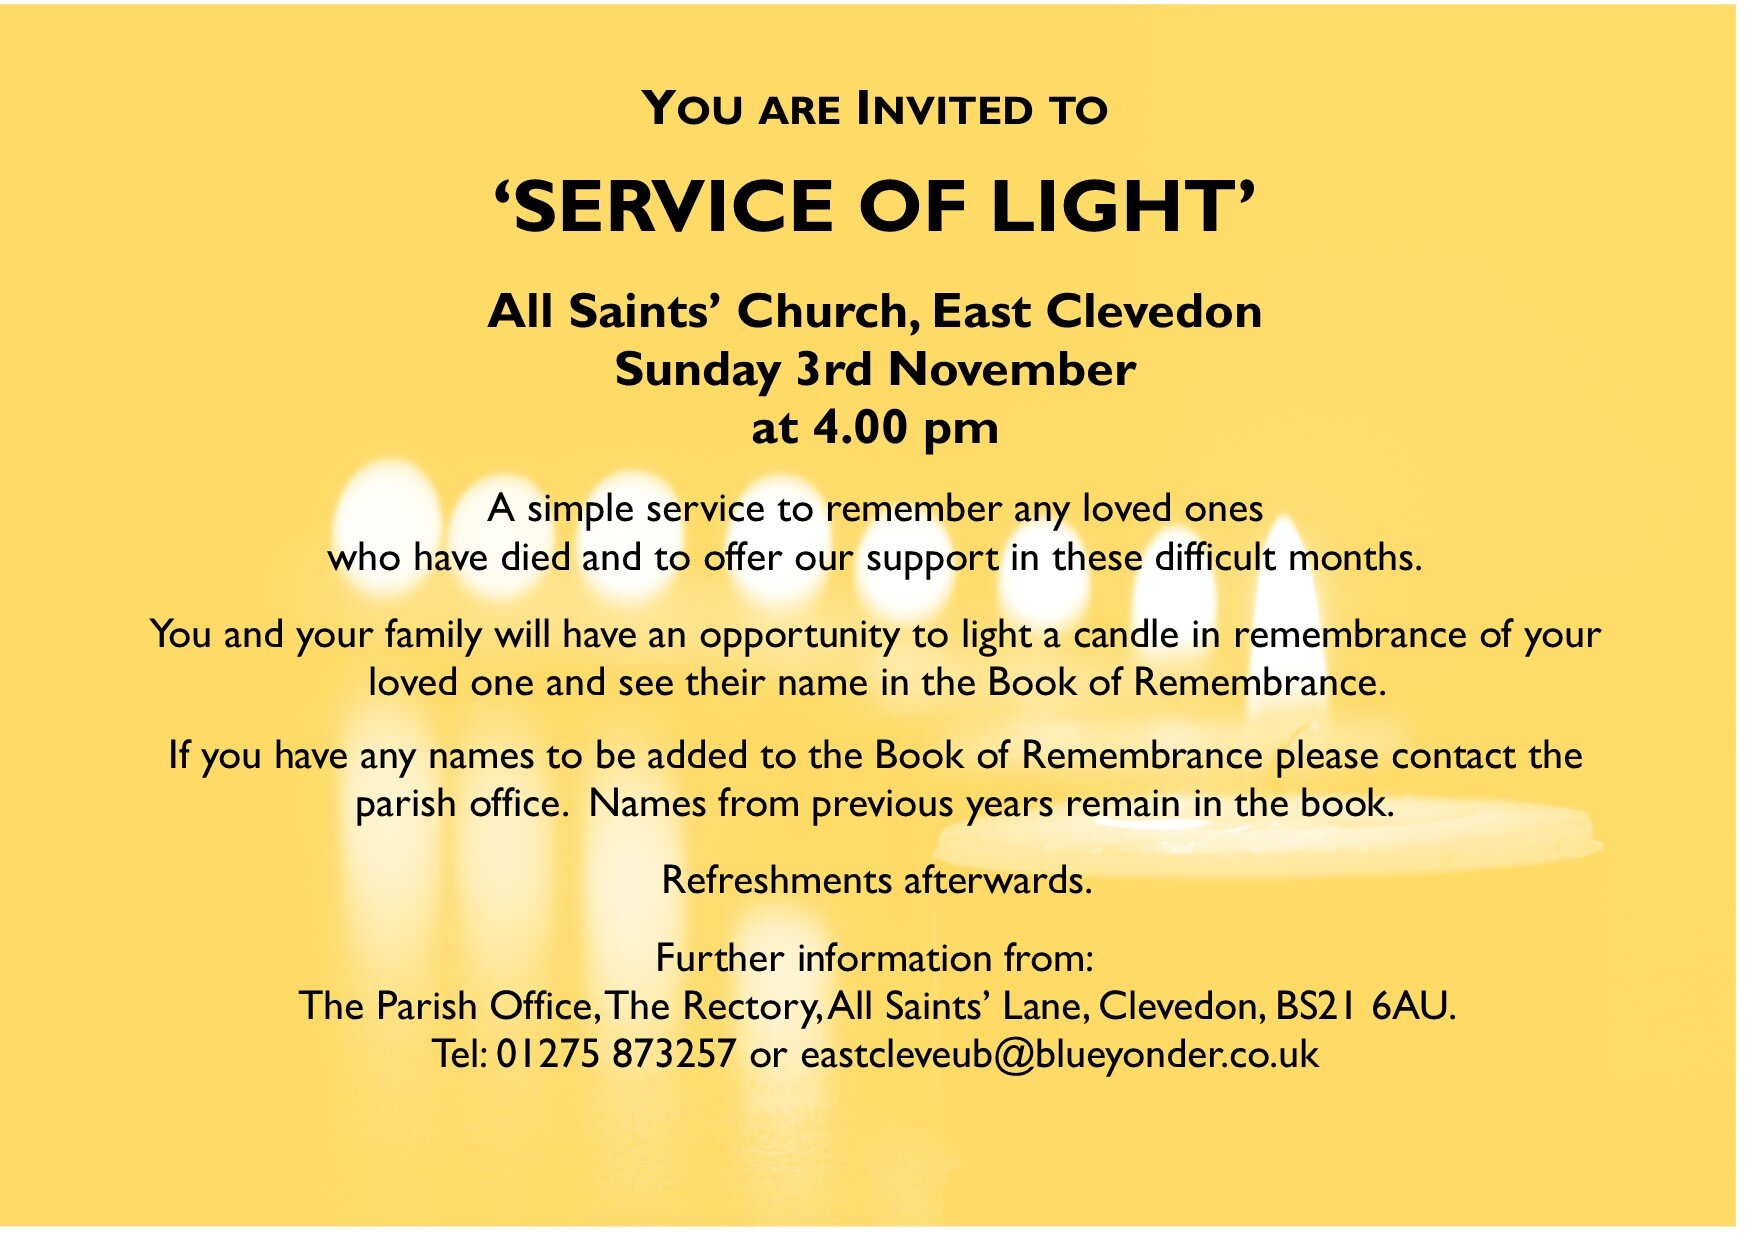 service of light poster graphic 2019.jpg